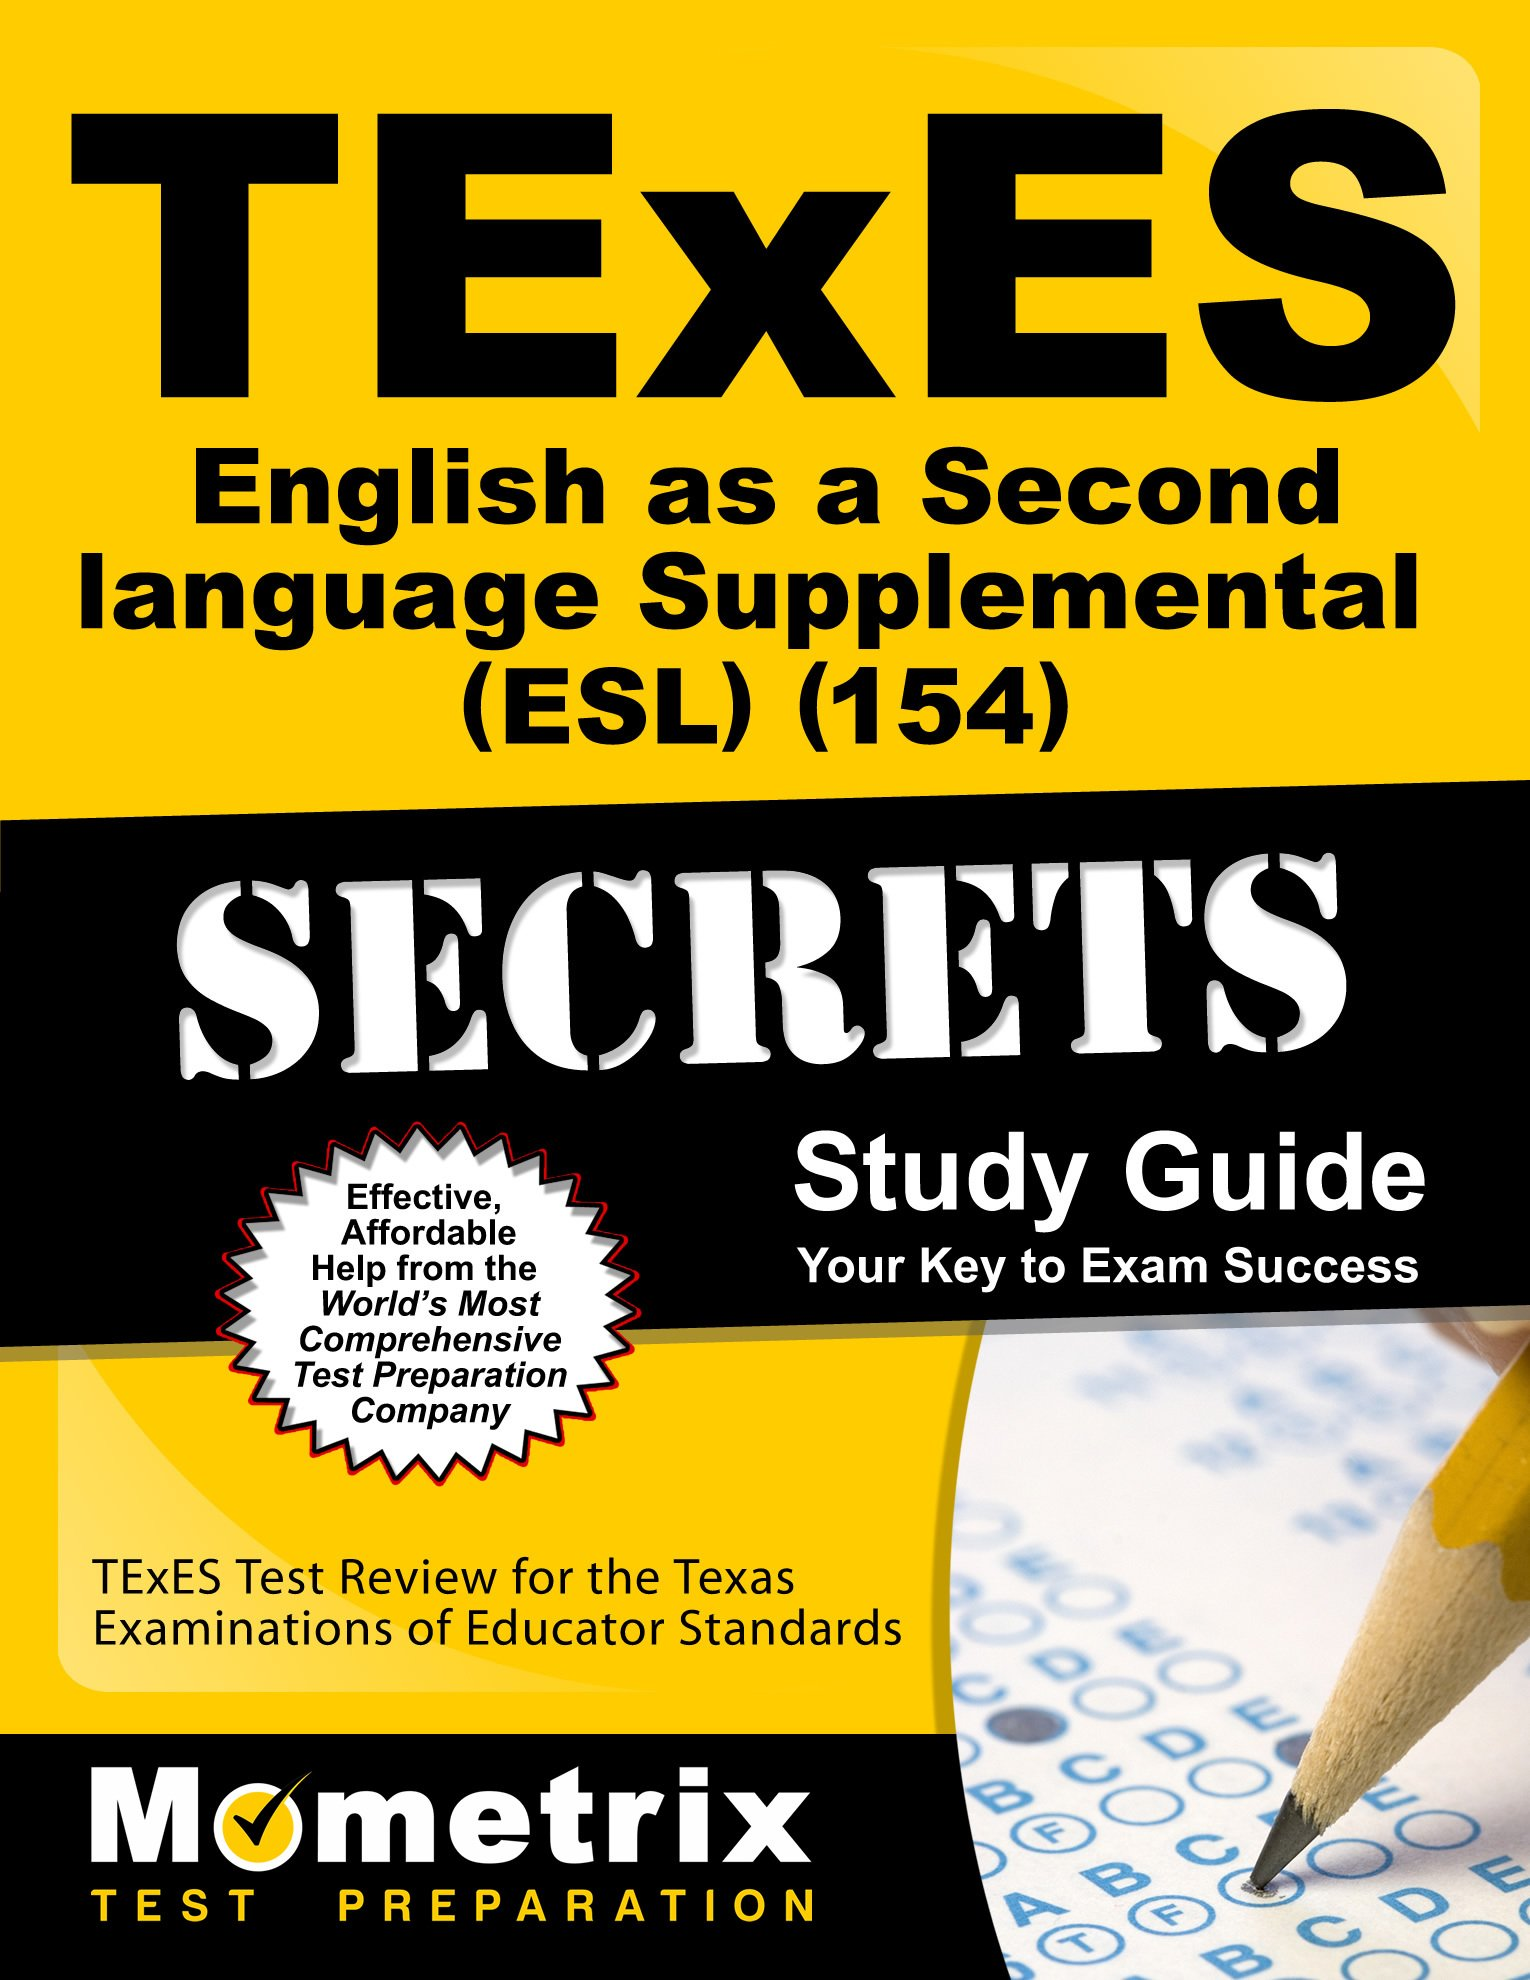 TExES English as a Second Language Supplemental (ESL) (154) Secrets Study Guide: TExES Test Review for the Texas Examinations of Educator Standards by Brand: Mometrix Media LLC